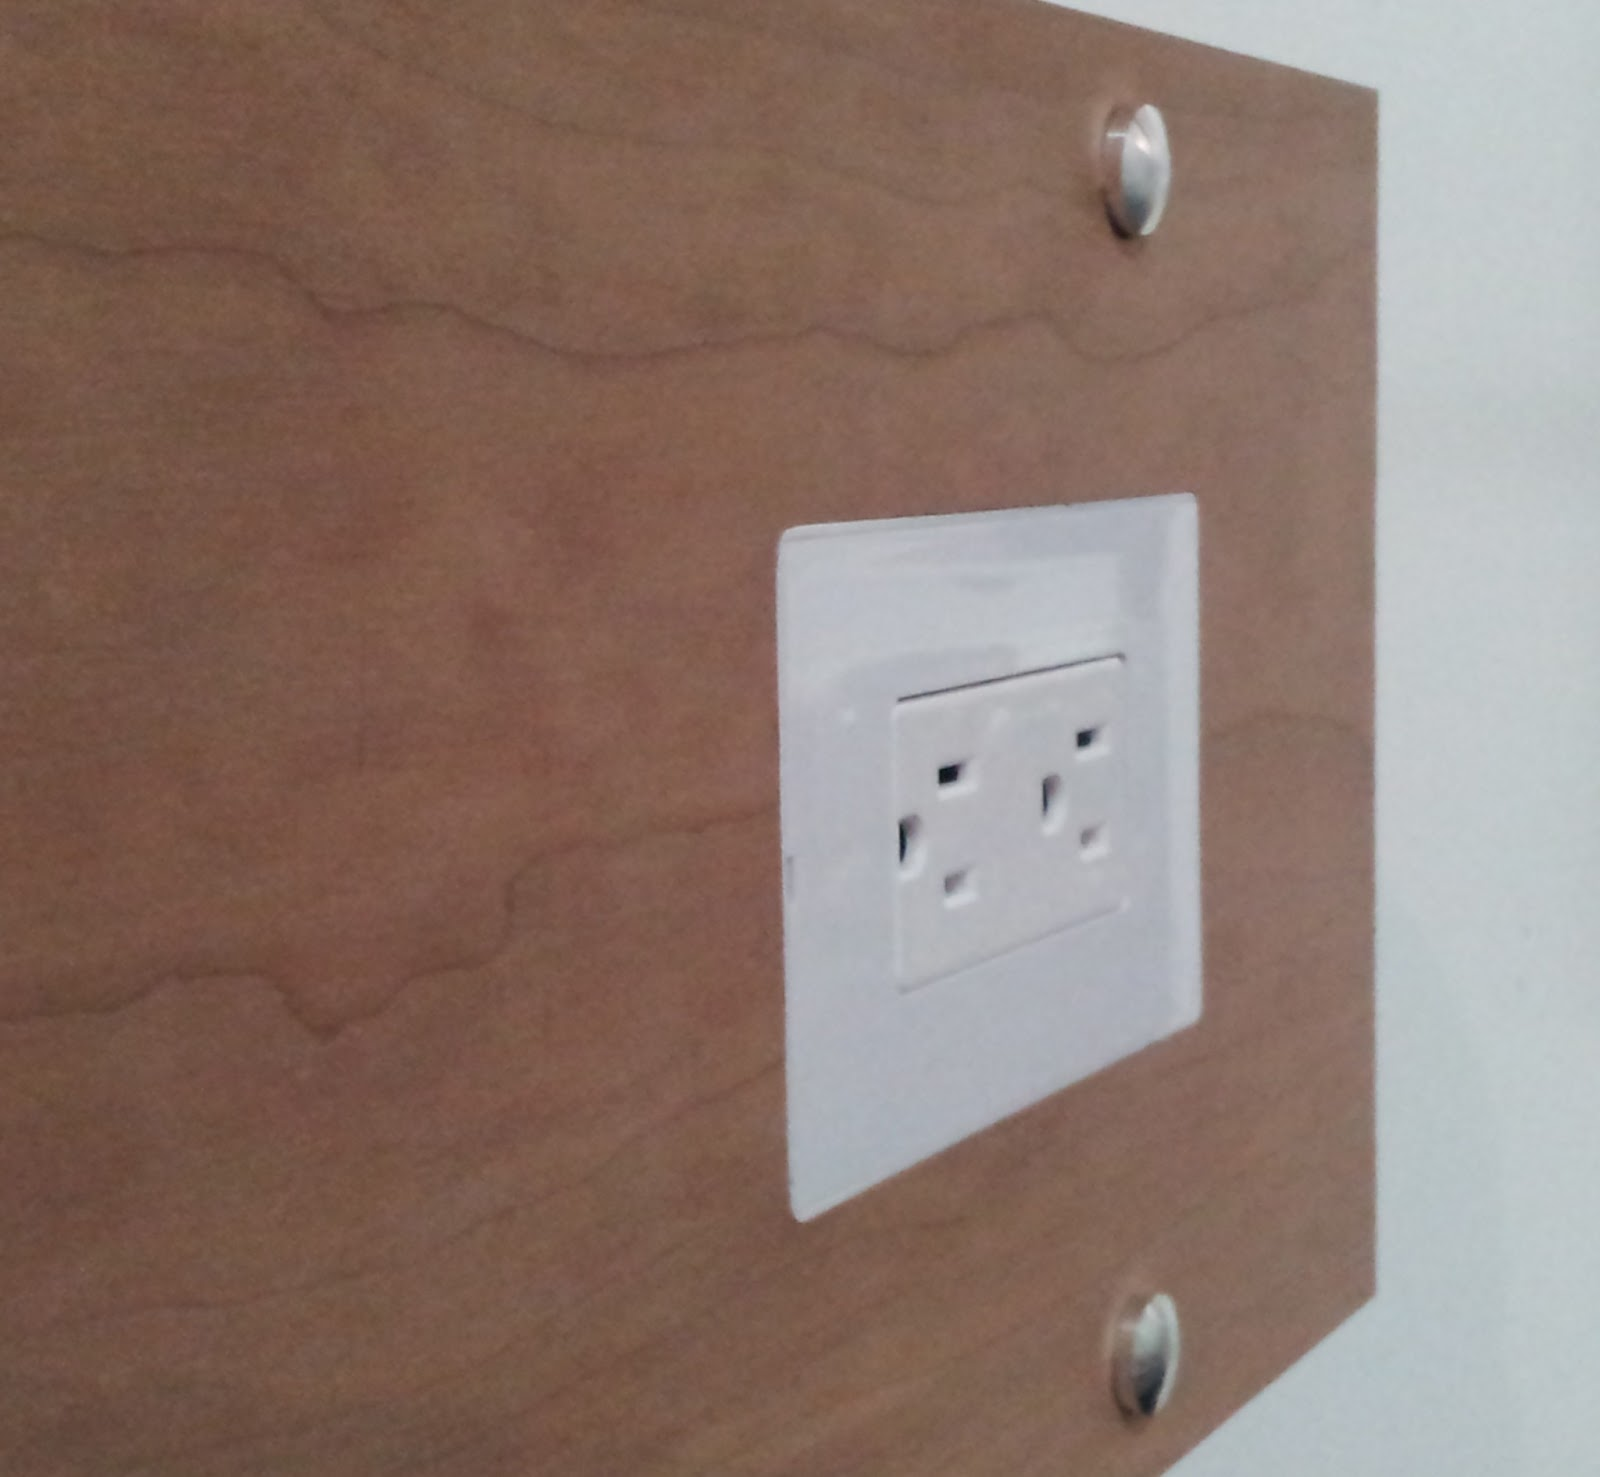 Smoothline flush-mount outlet cover for wood